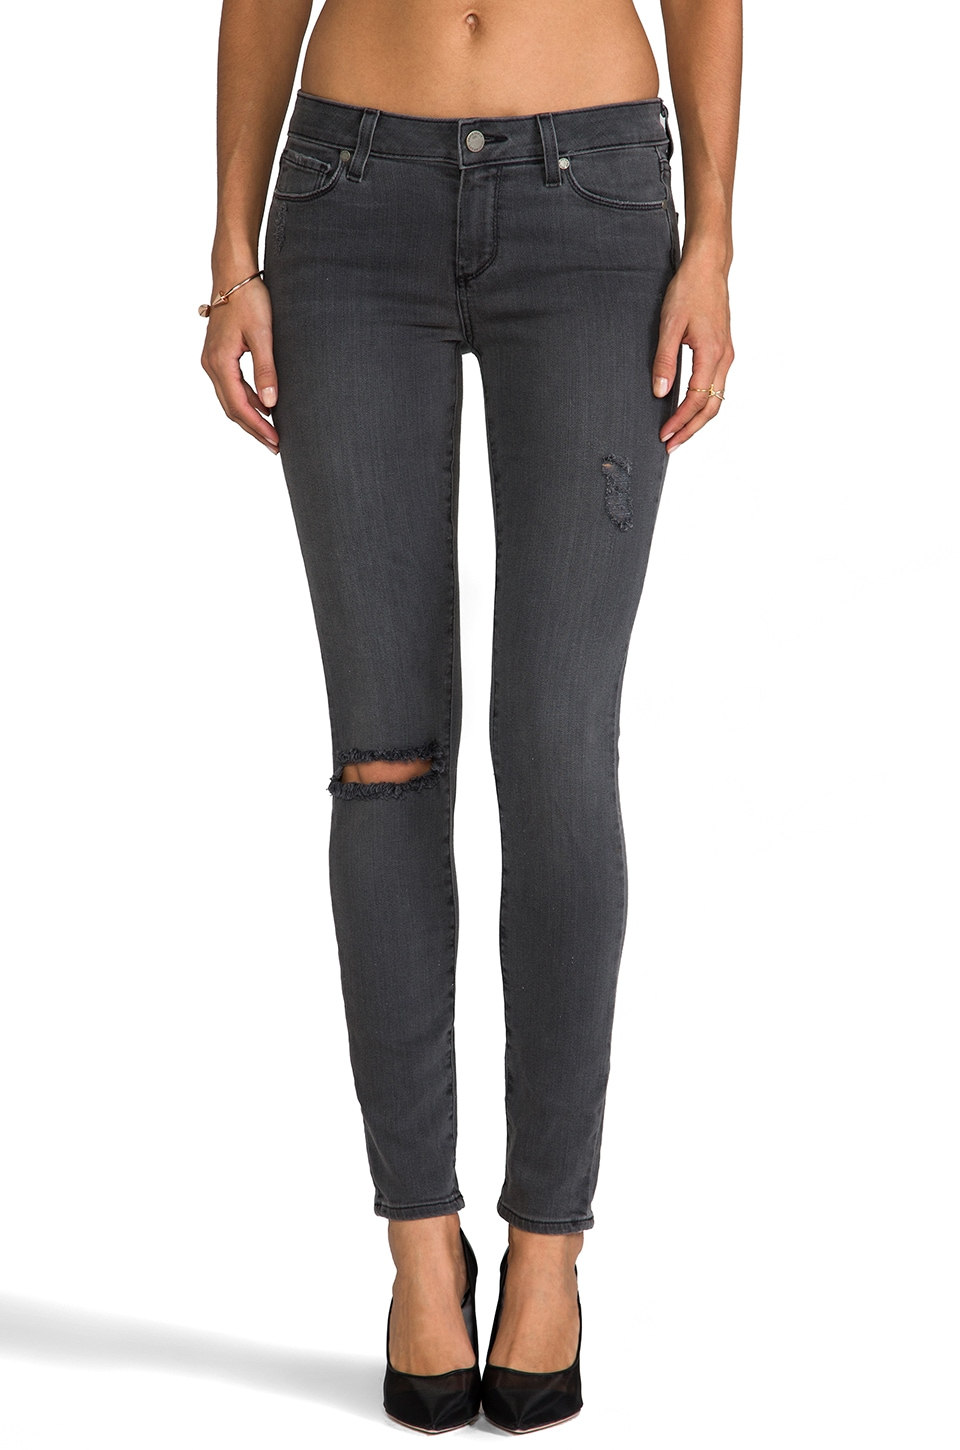 Paige Denim Verdugo Ultra Skinny in Kate Destructed